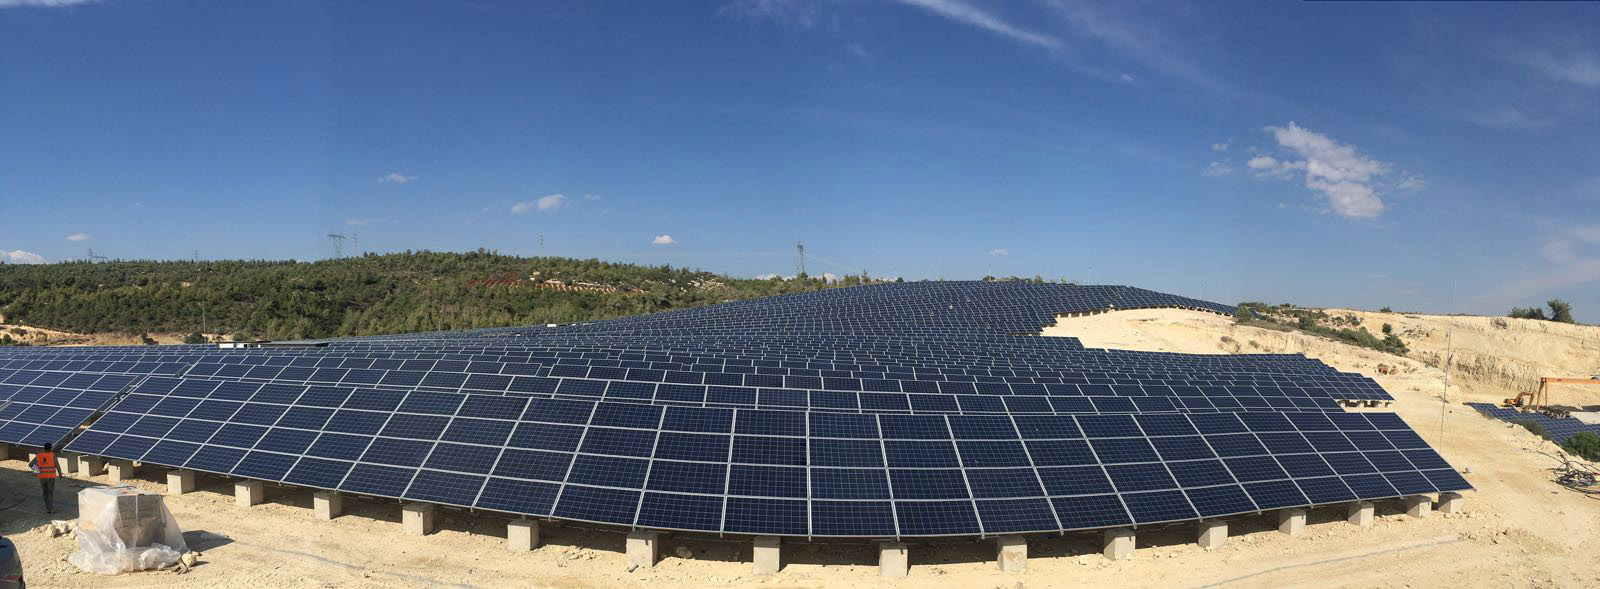 corycos group solar farm